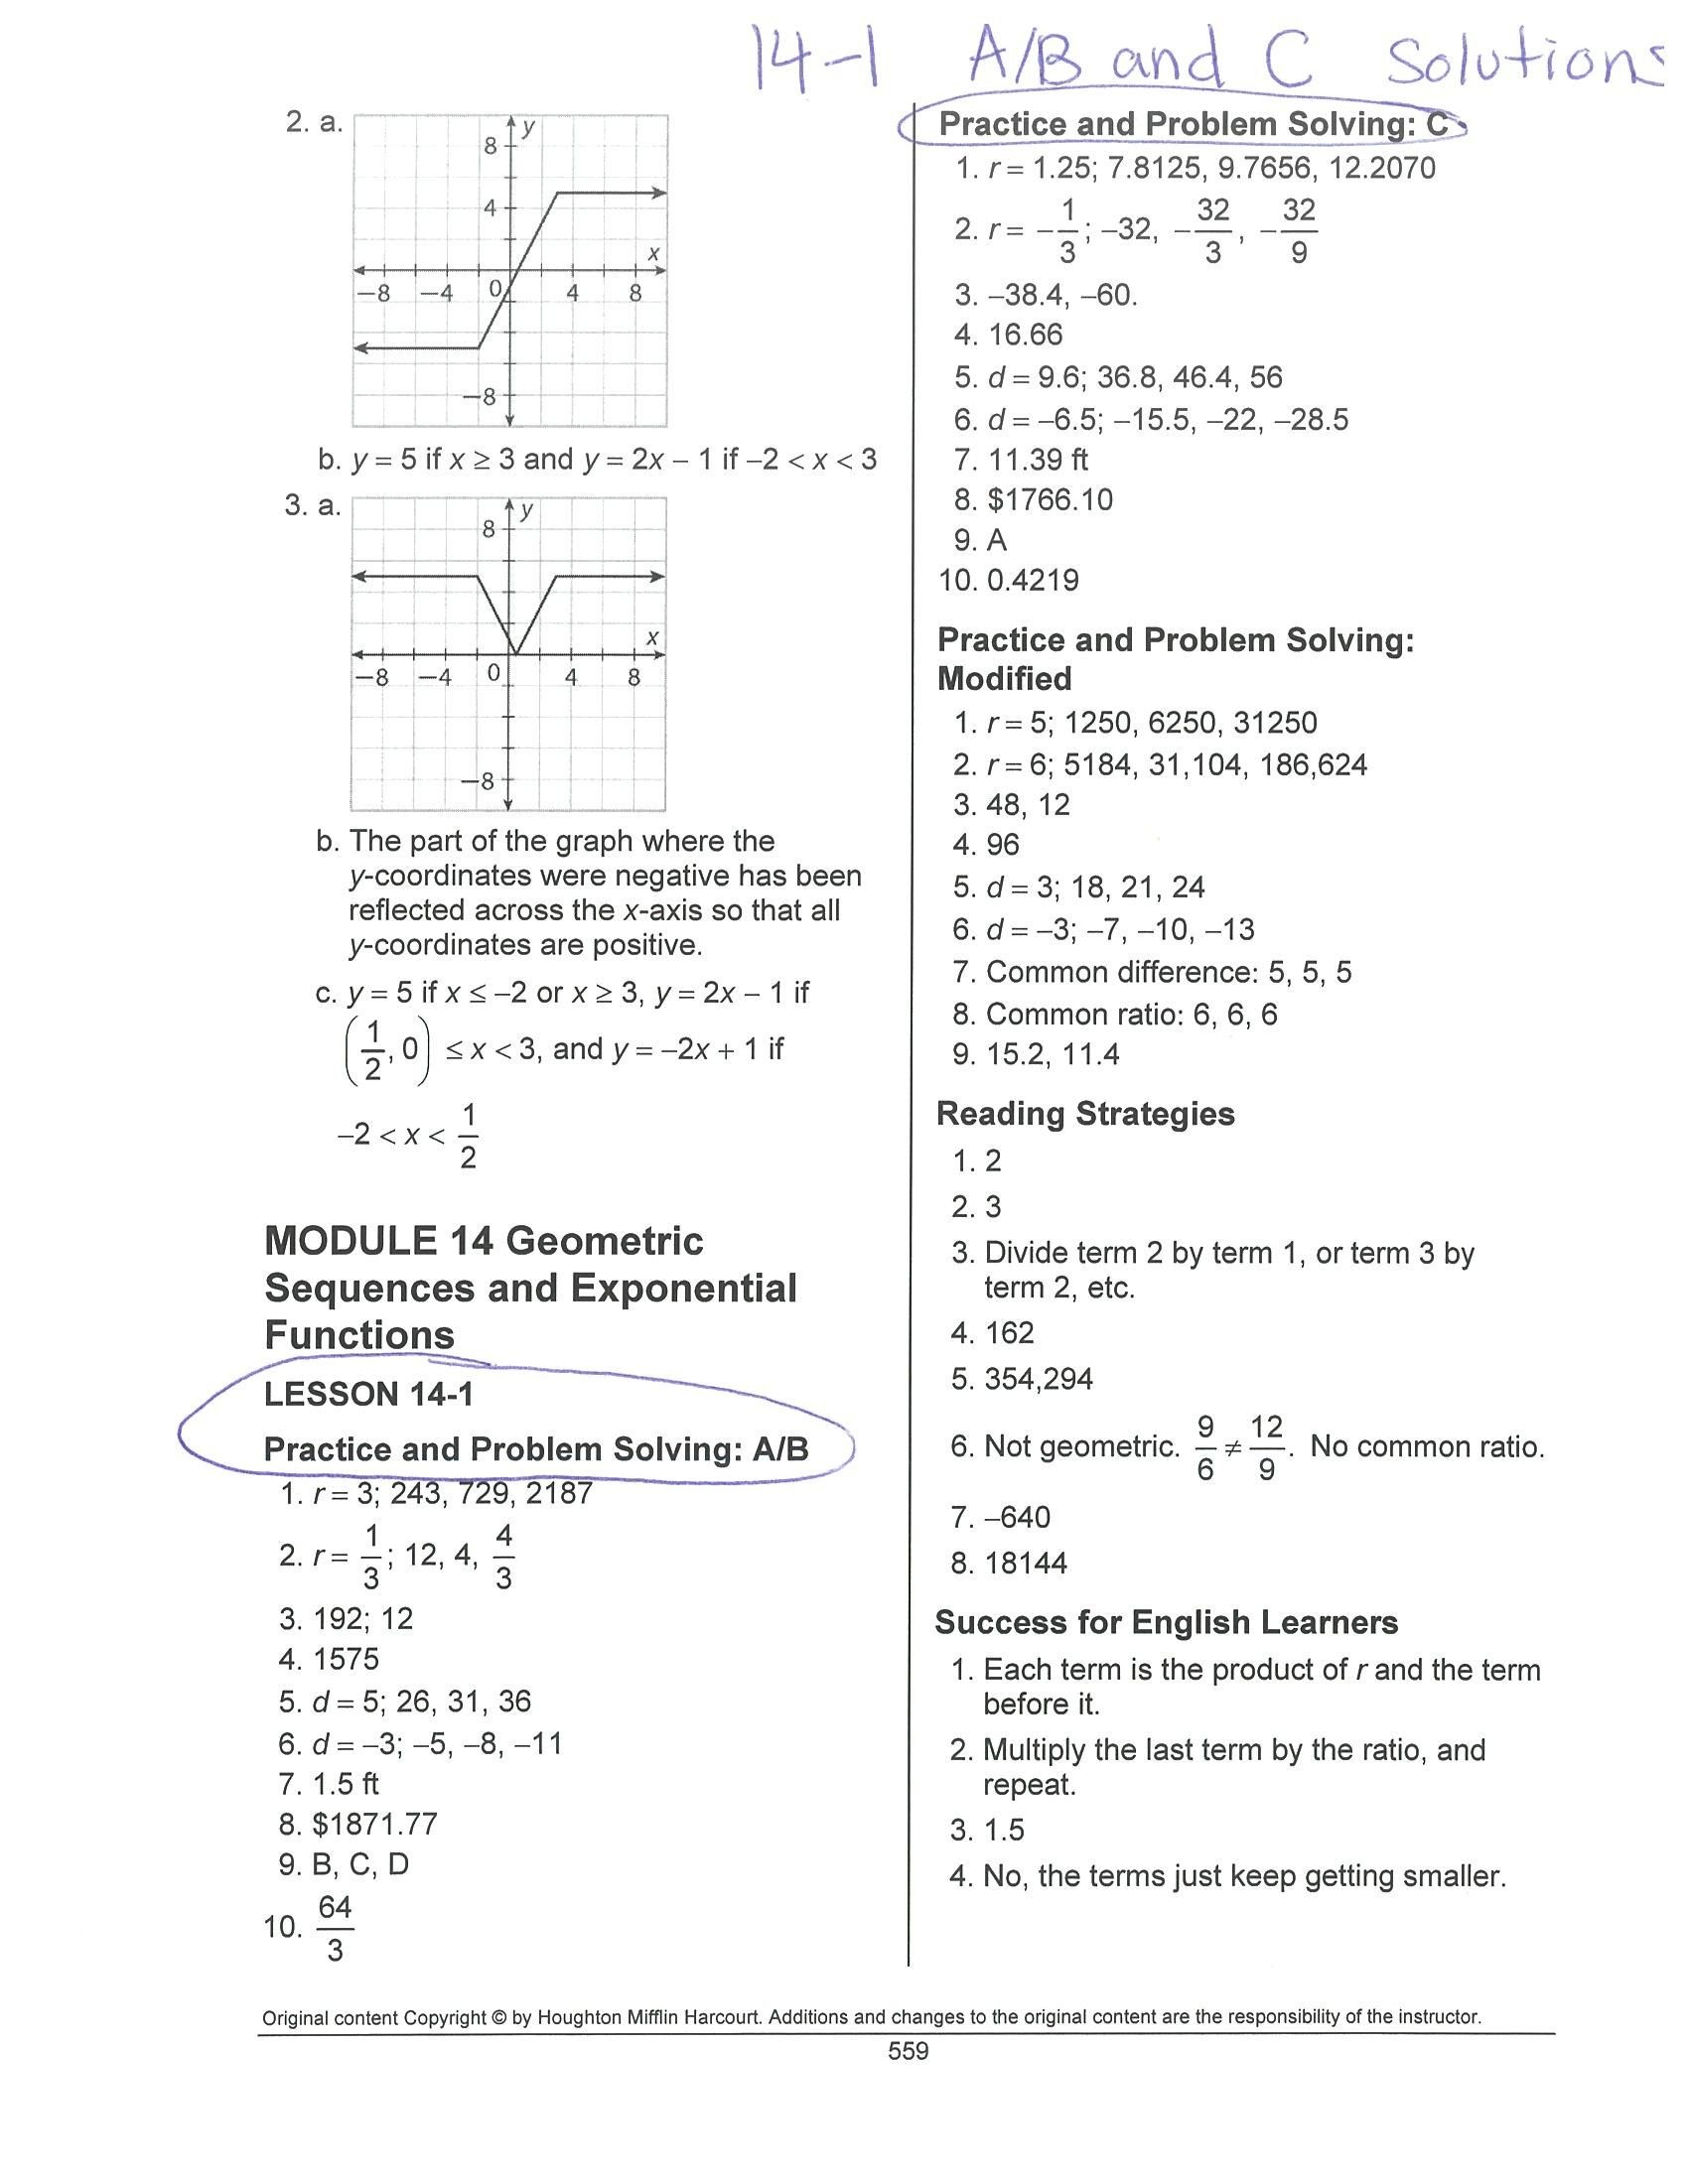 Probability Theory Worksheet 1